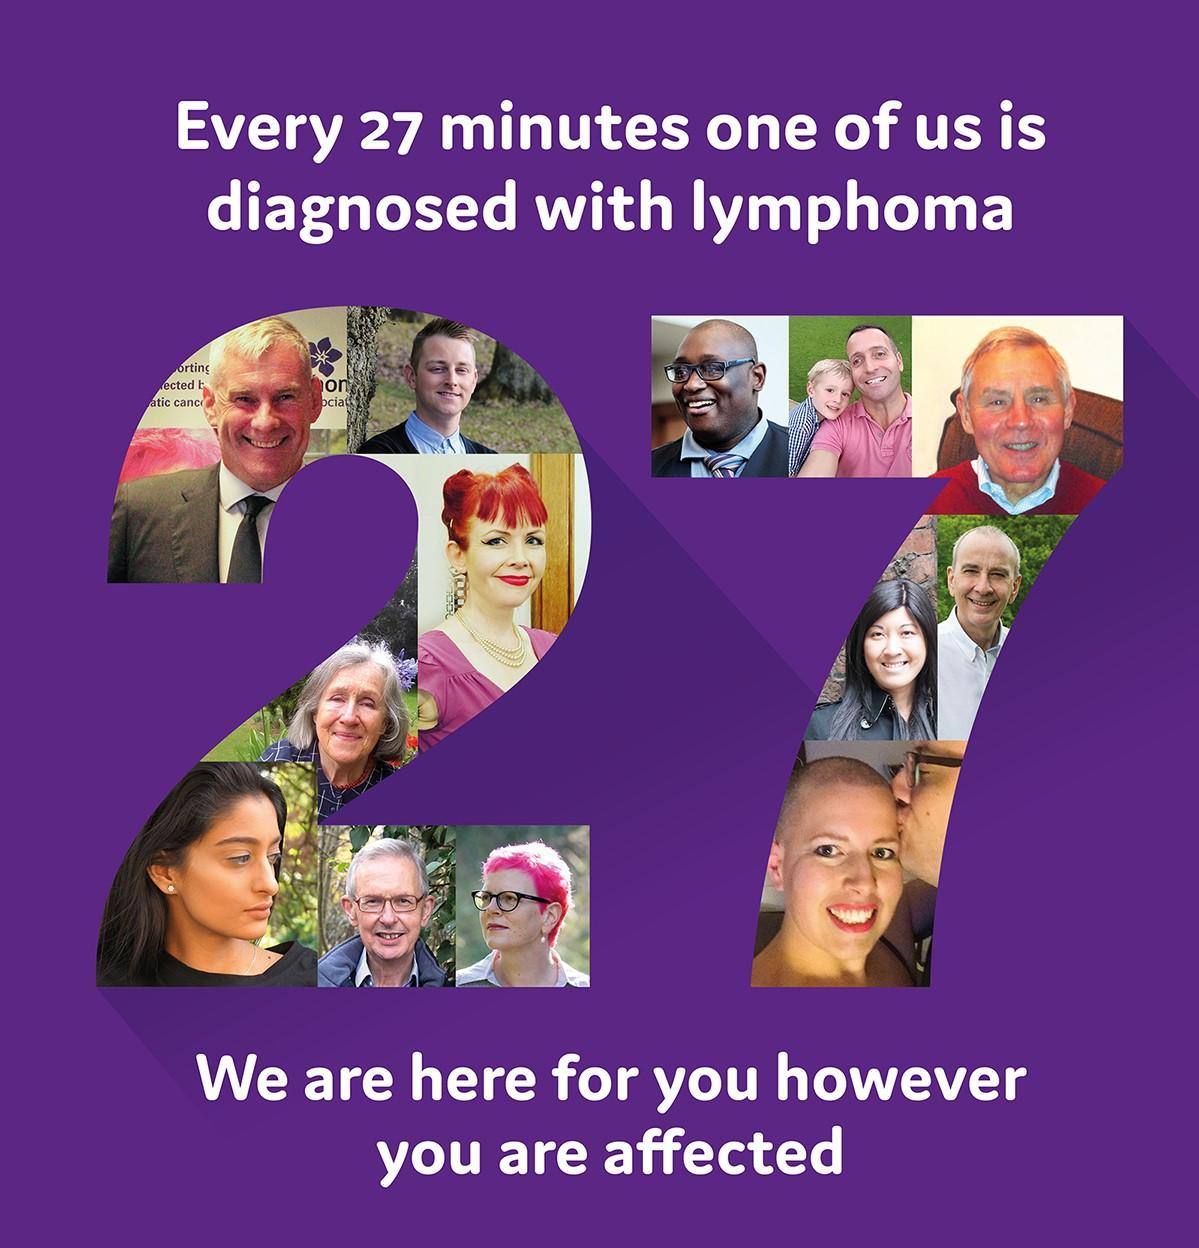 Image highlighting every 27 minutes one of us is diagnosed with lymphoma